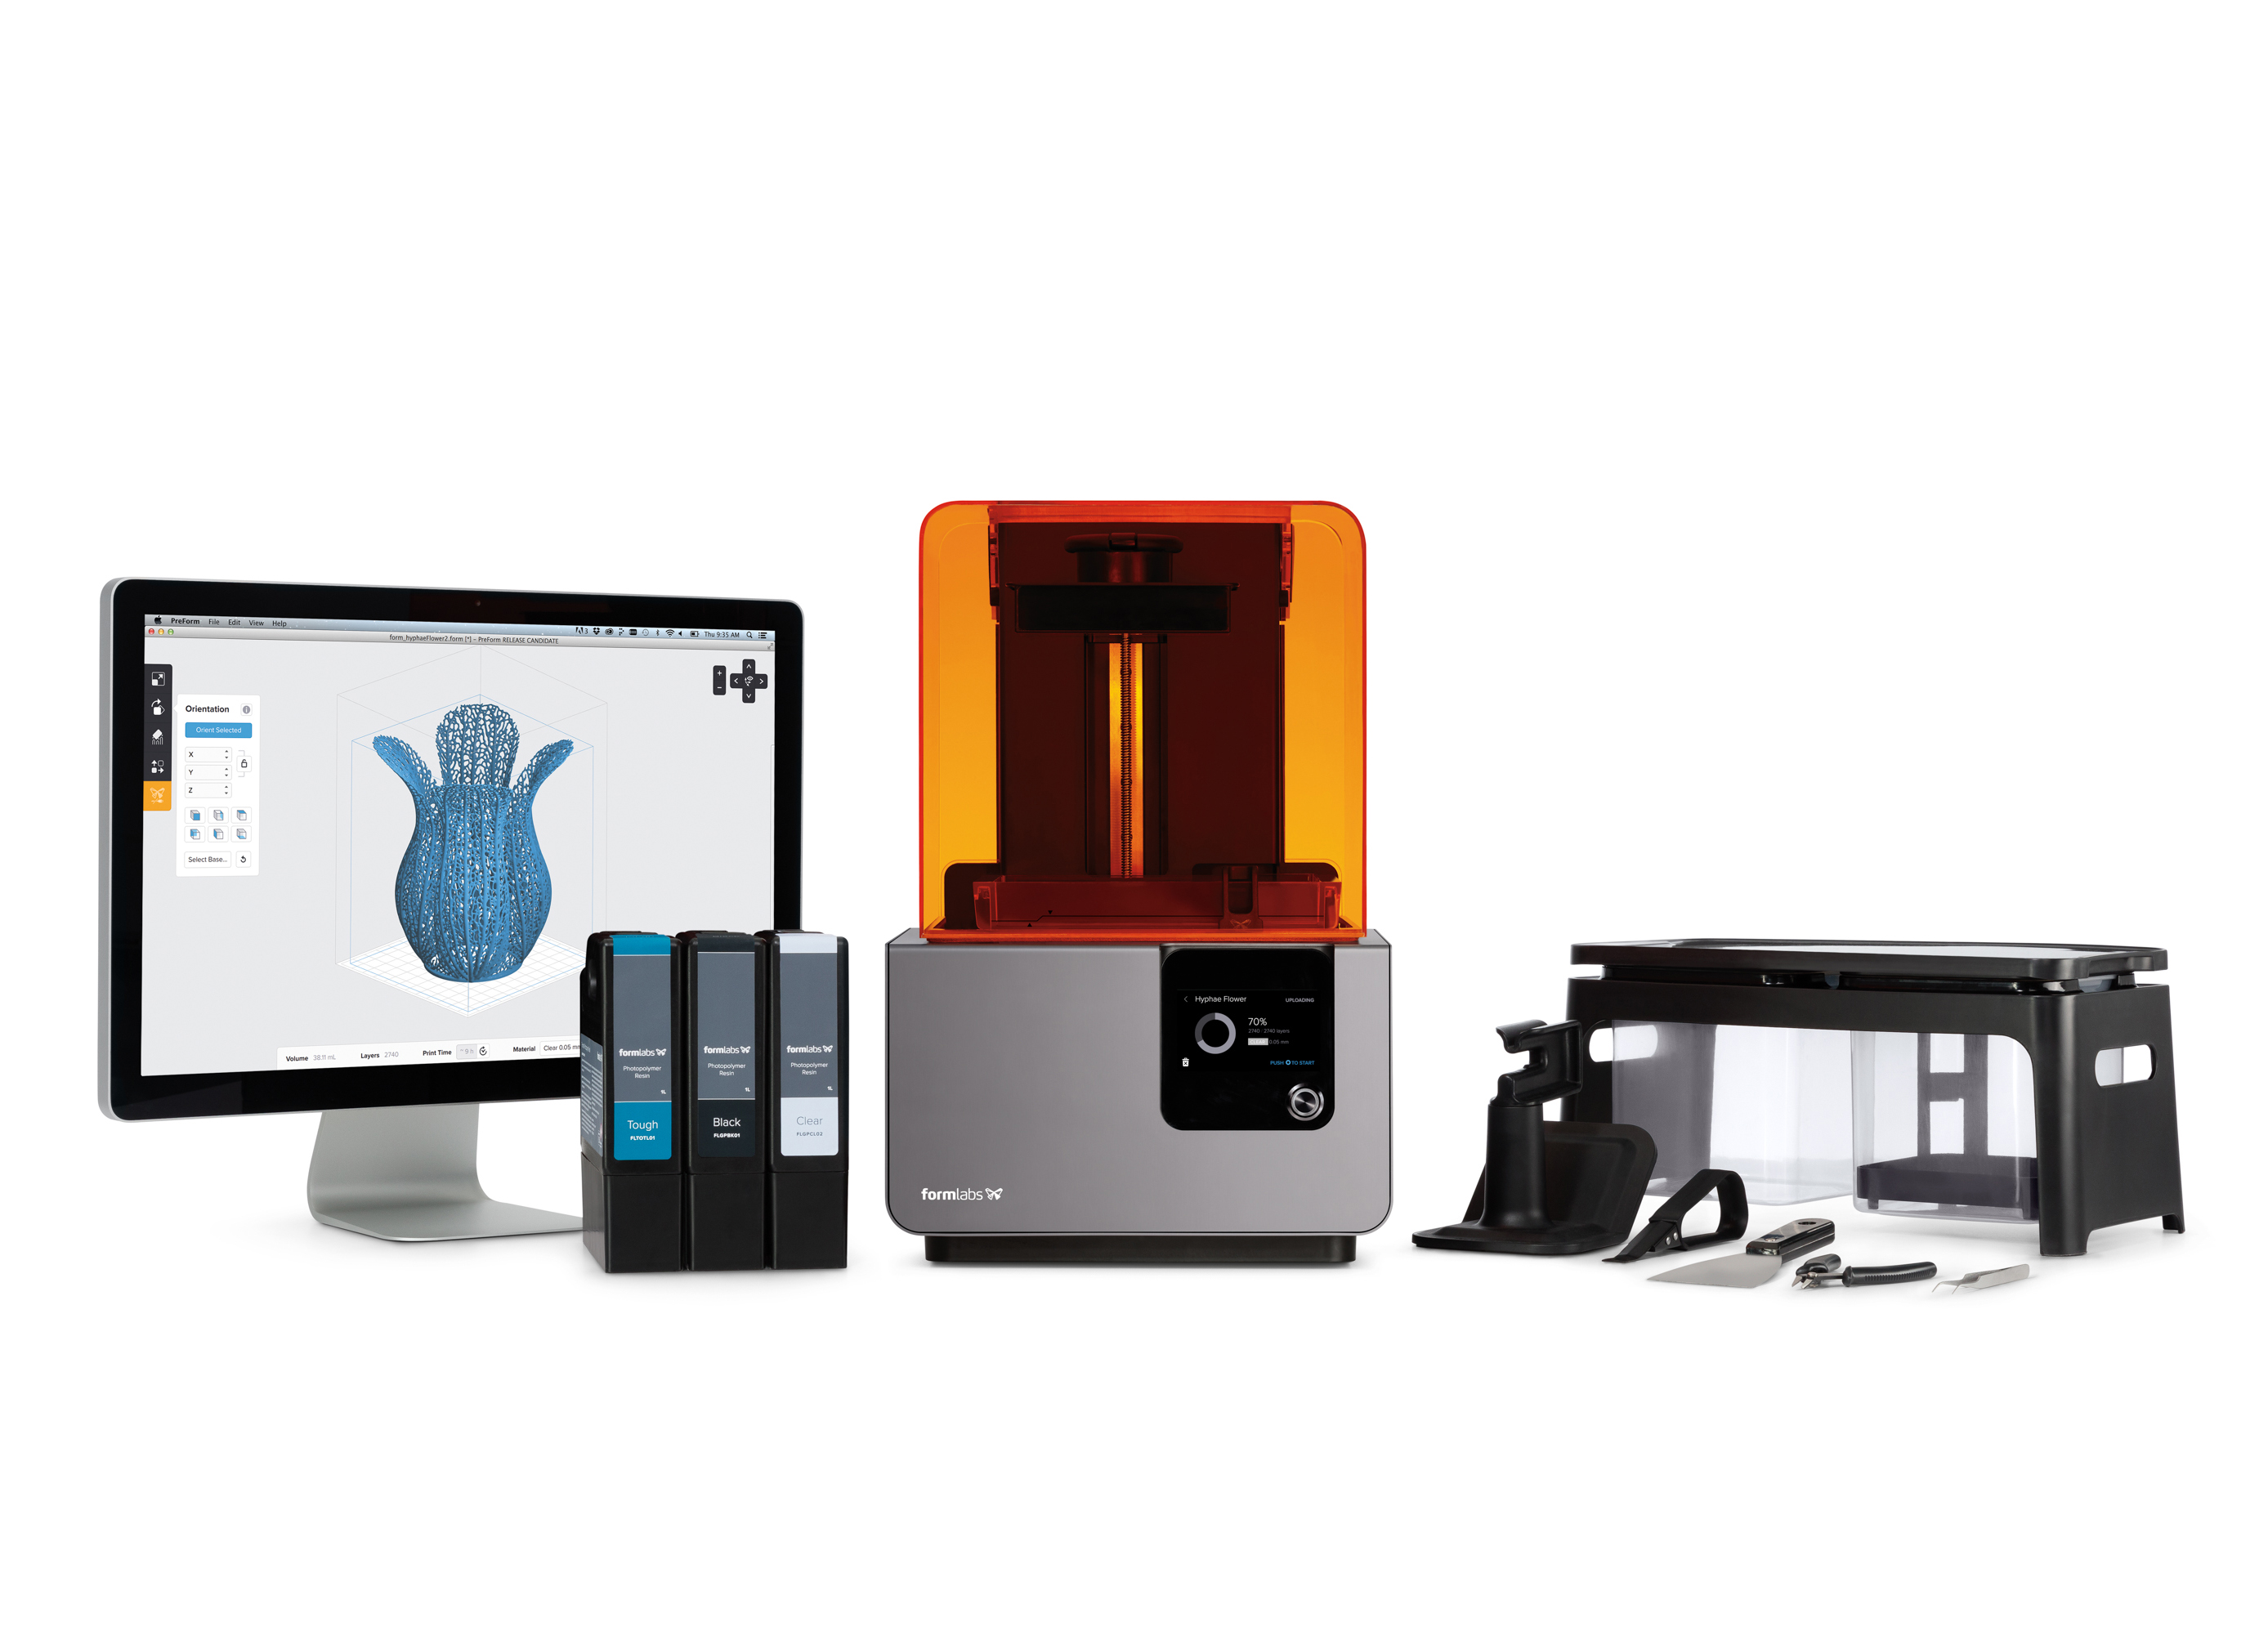 Formlabs' new Form 2 printer is 40% bigger than its previous desktop stereolithography machine.